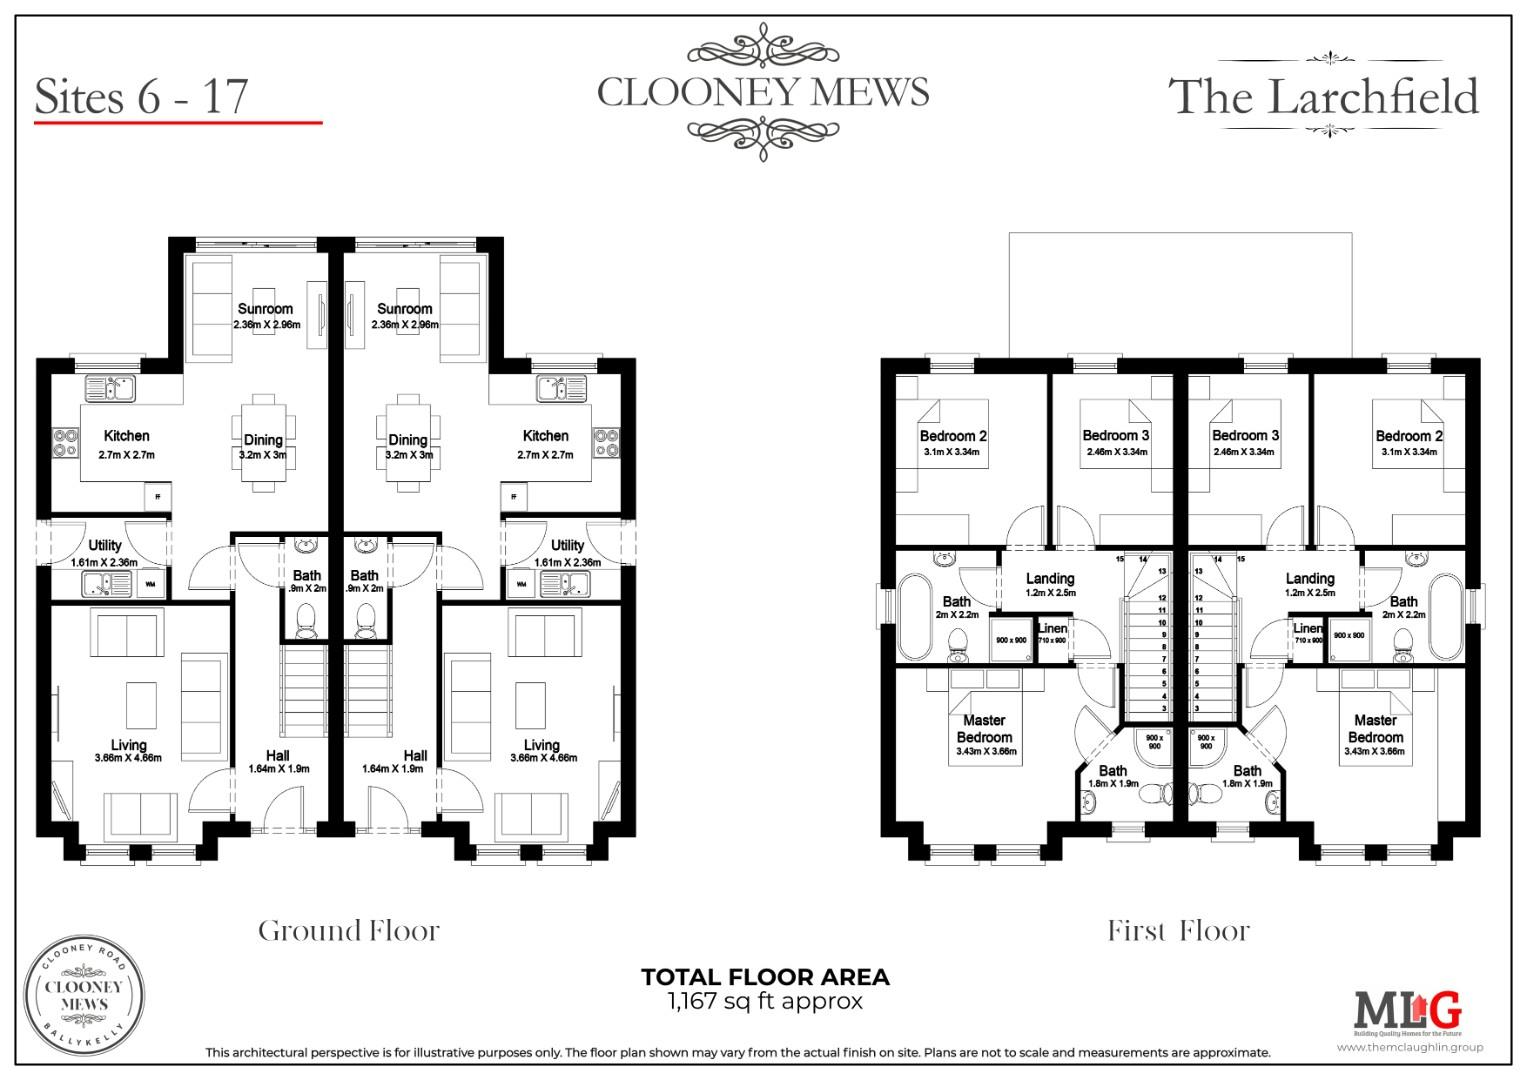 CLOONEY MEWS - The Larchfield - Floor Plan _ 6 - 1